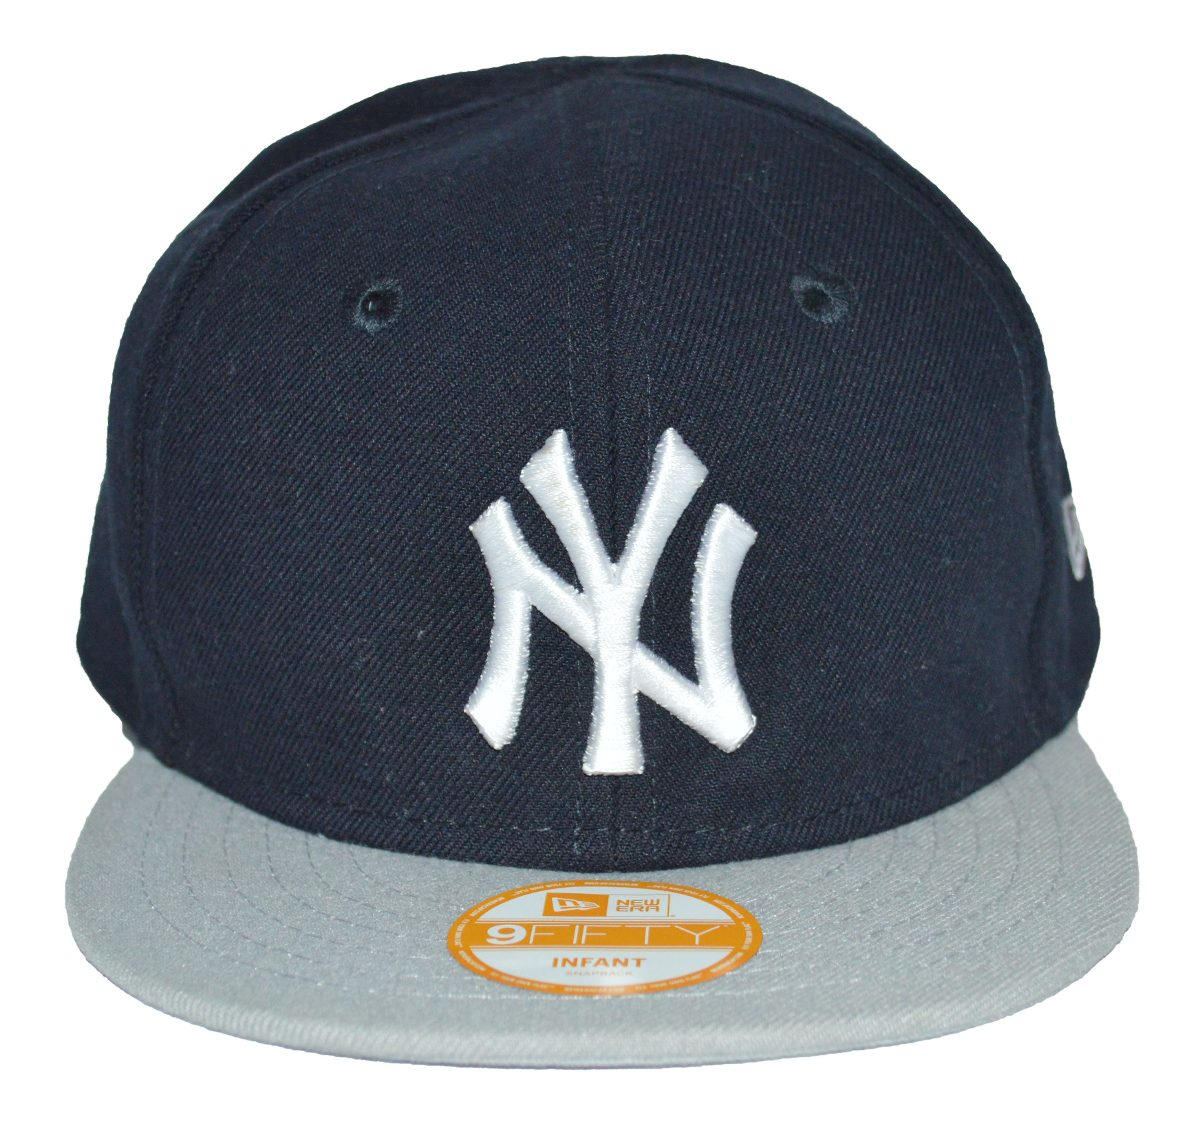 14d05def5dabb boné new era aba reta aberto mlb new york yankees infantil. Carregando zoom.